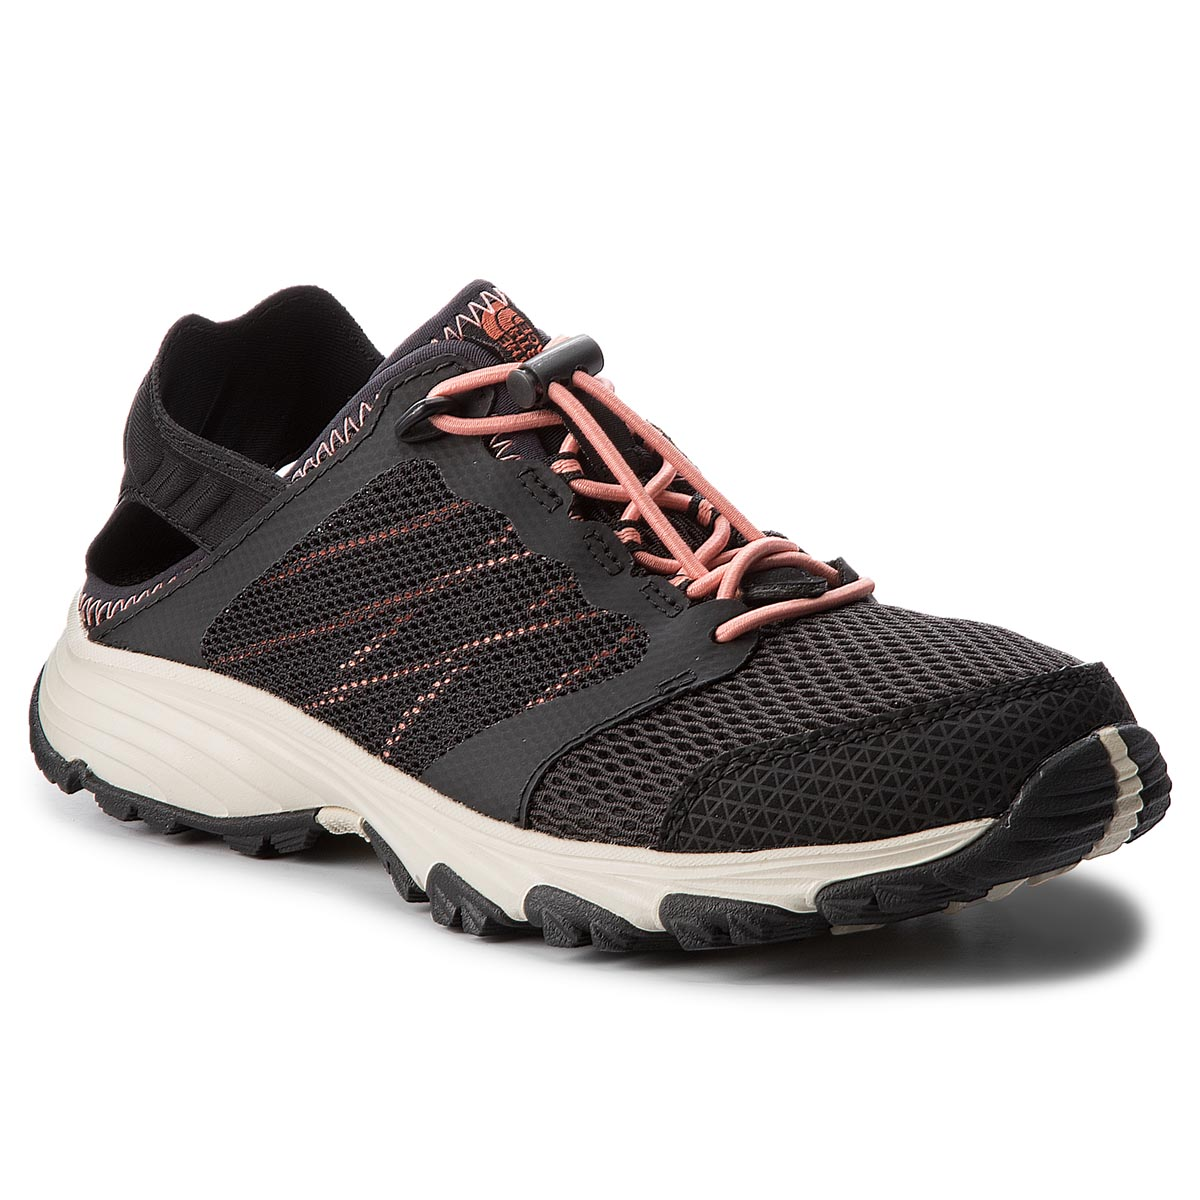 Batai THE NORTH FACE - Litewave Amphibious II T939I74GG Tnf Black/Desert Flower Orange